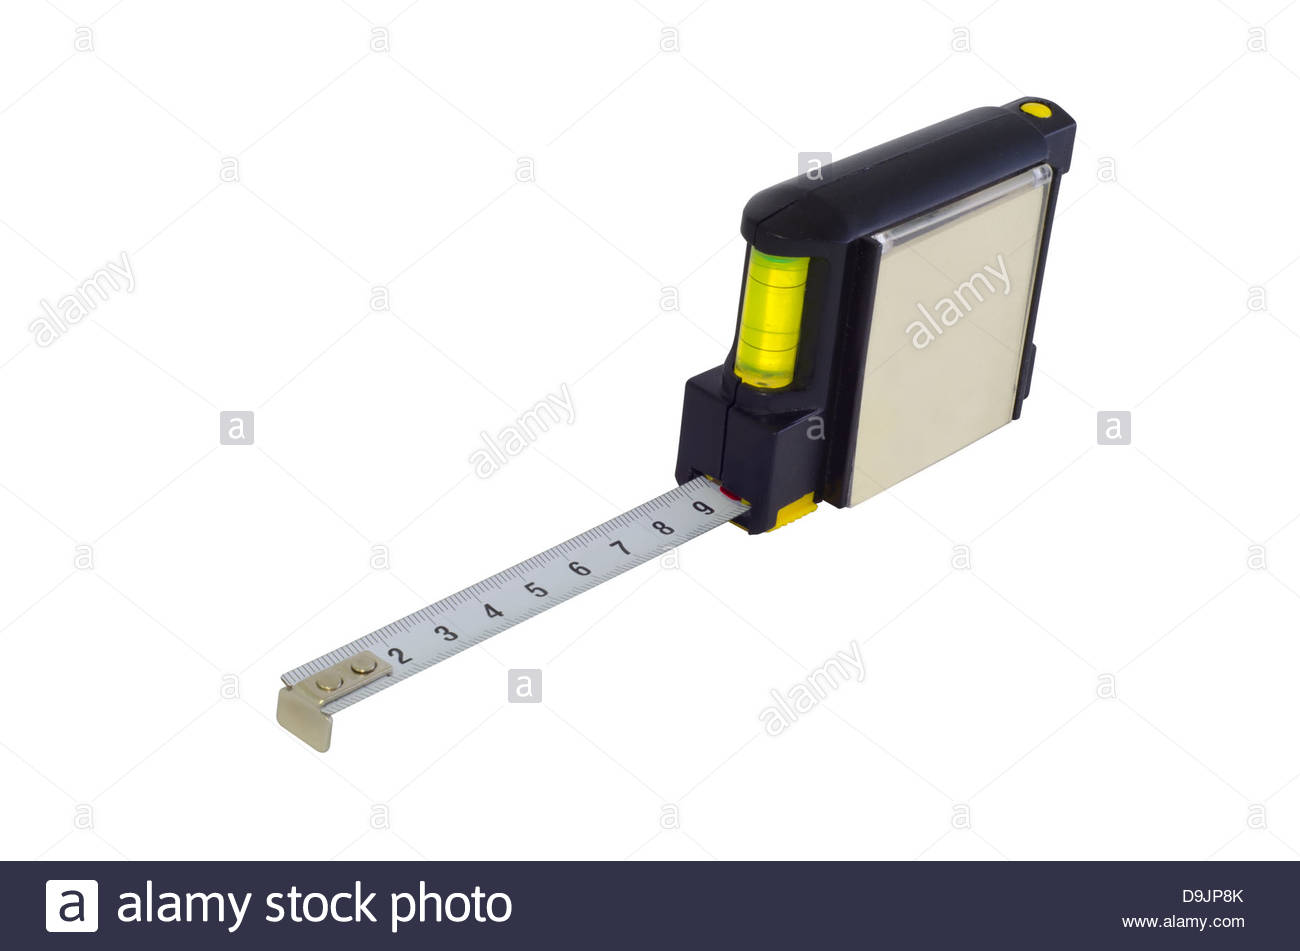 metallic tape measure with level for promotion and advertisement isolated over a white background - Stock Image